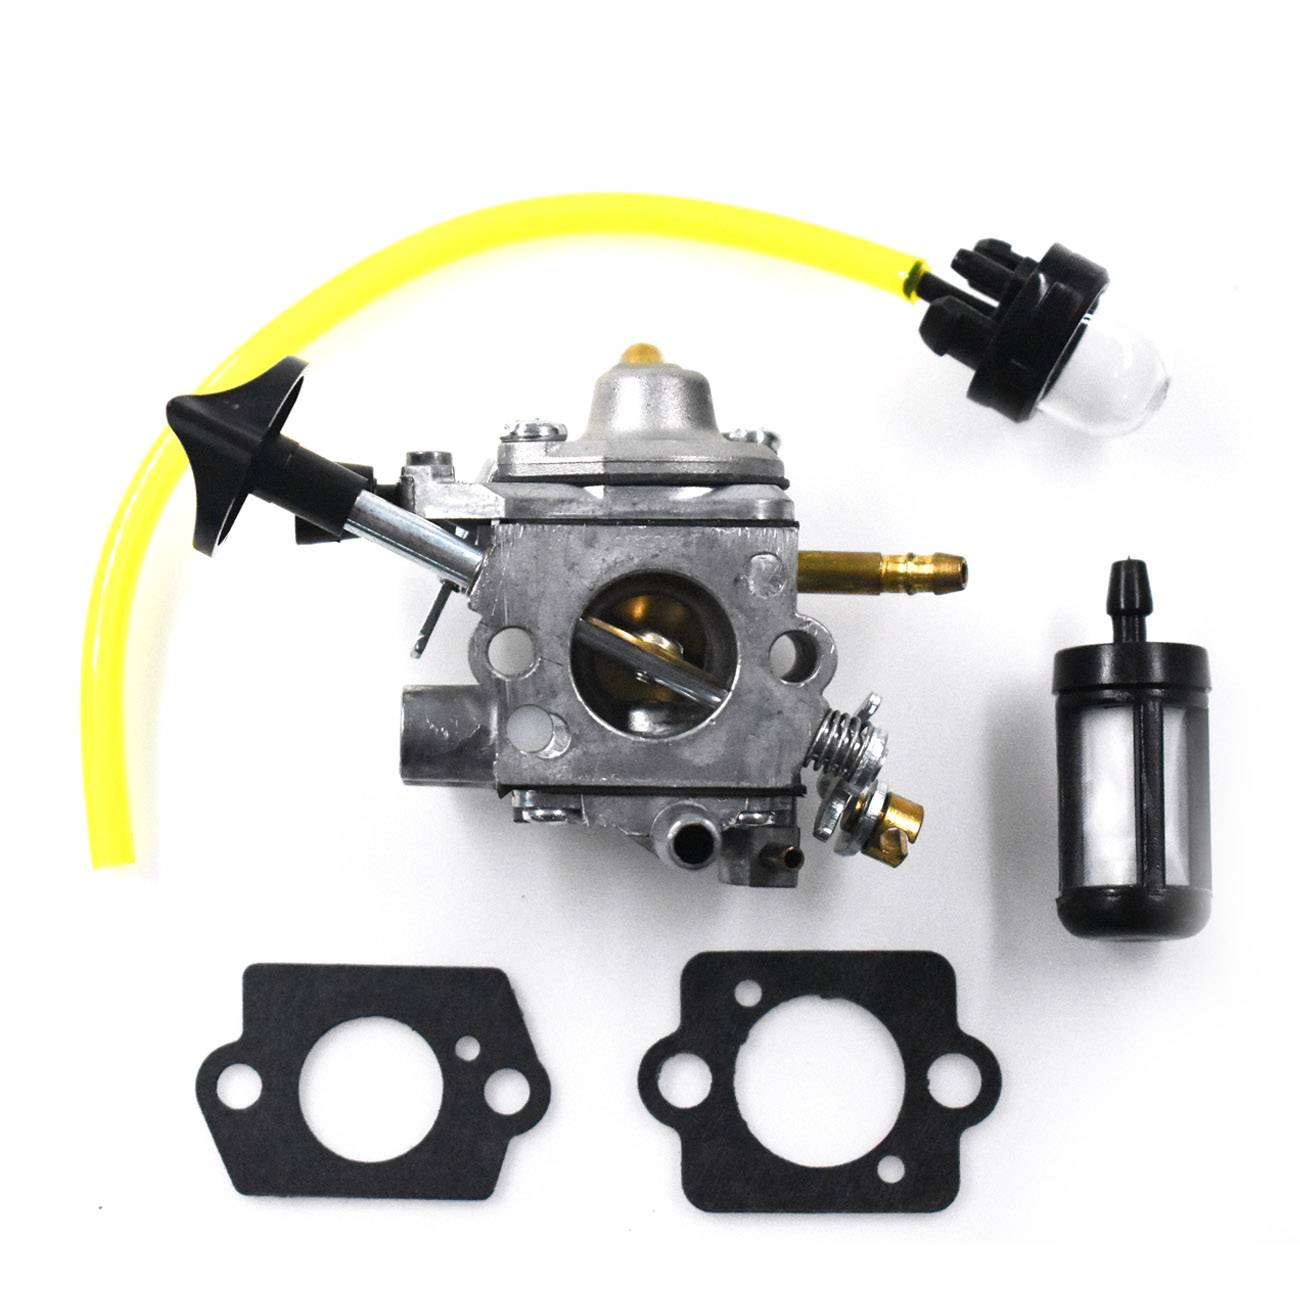 ignition coil fits st br500 br550 br600 backpack leaf blower free shipping magneto module stator parts p n 4282 400 1305 NEW Carburetor Tune Up For Stihl BR500 BR550 BR600 Backpack Blower Zama C1Q-S183